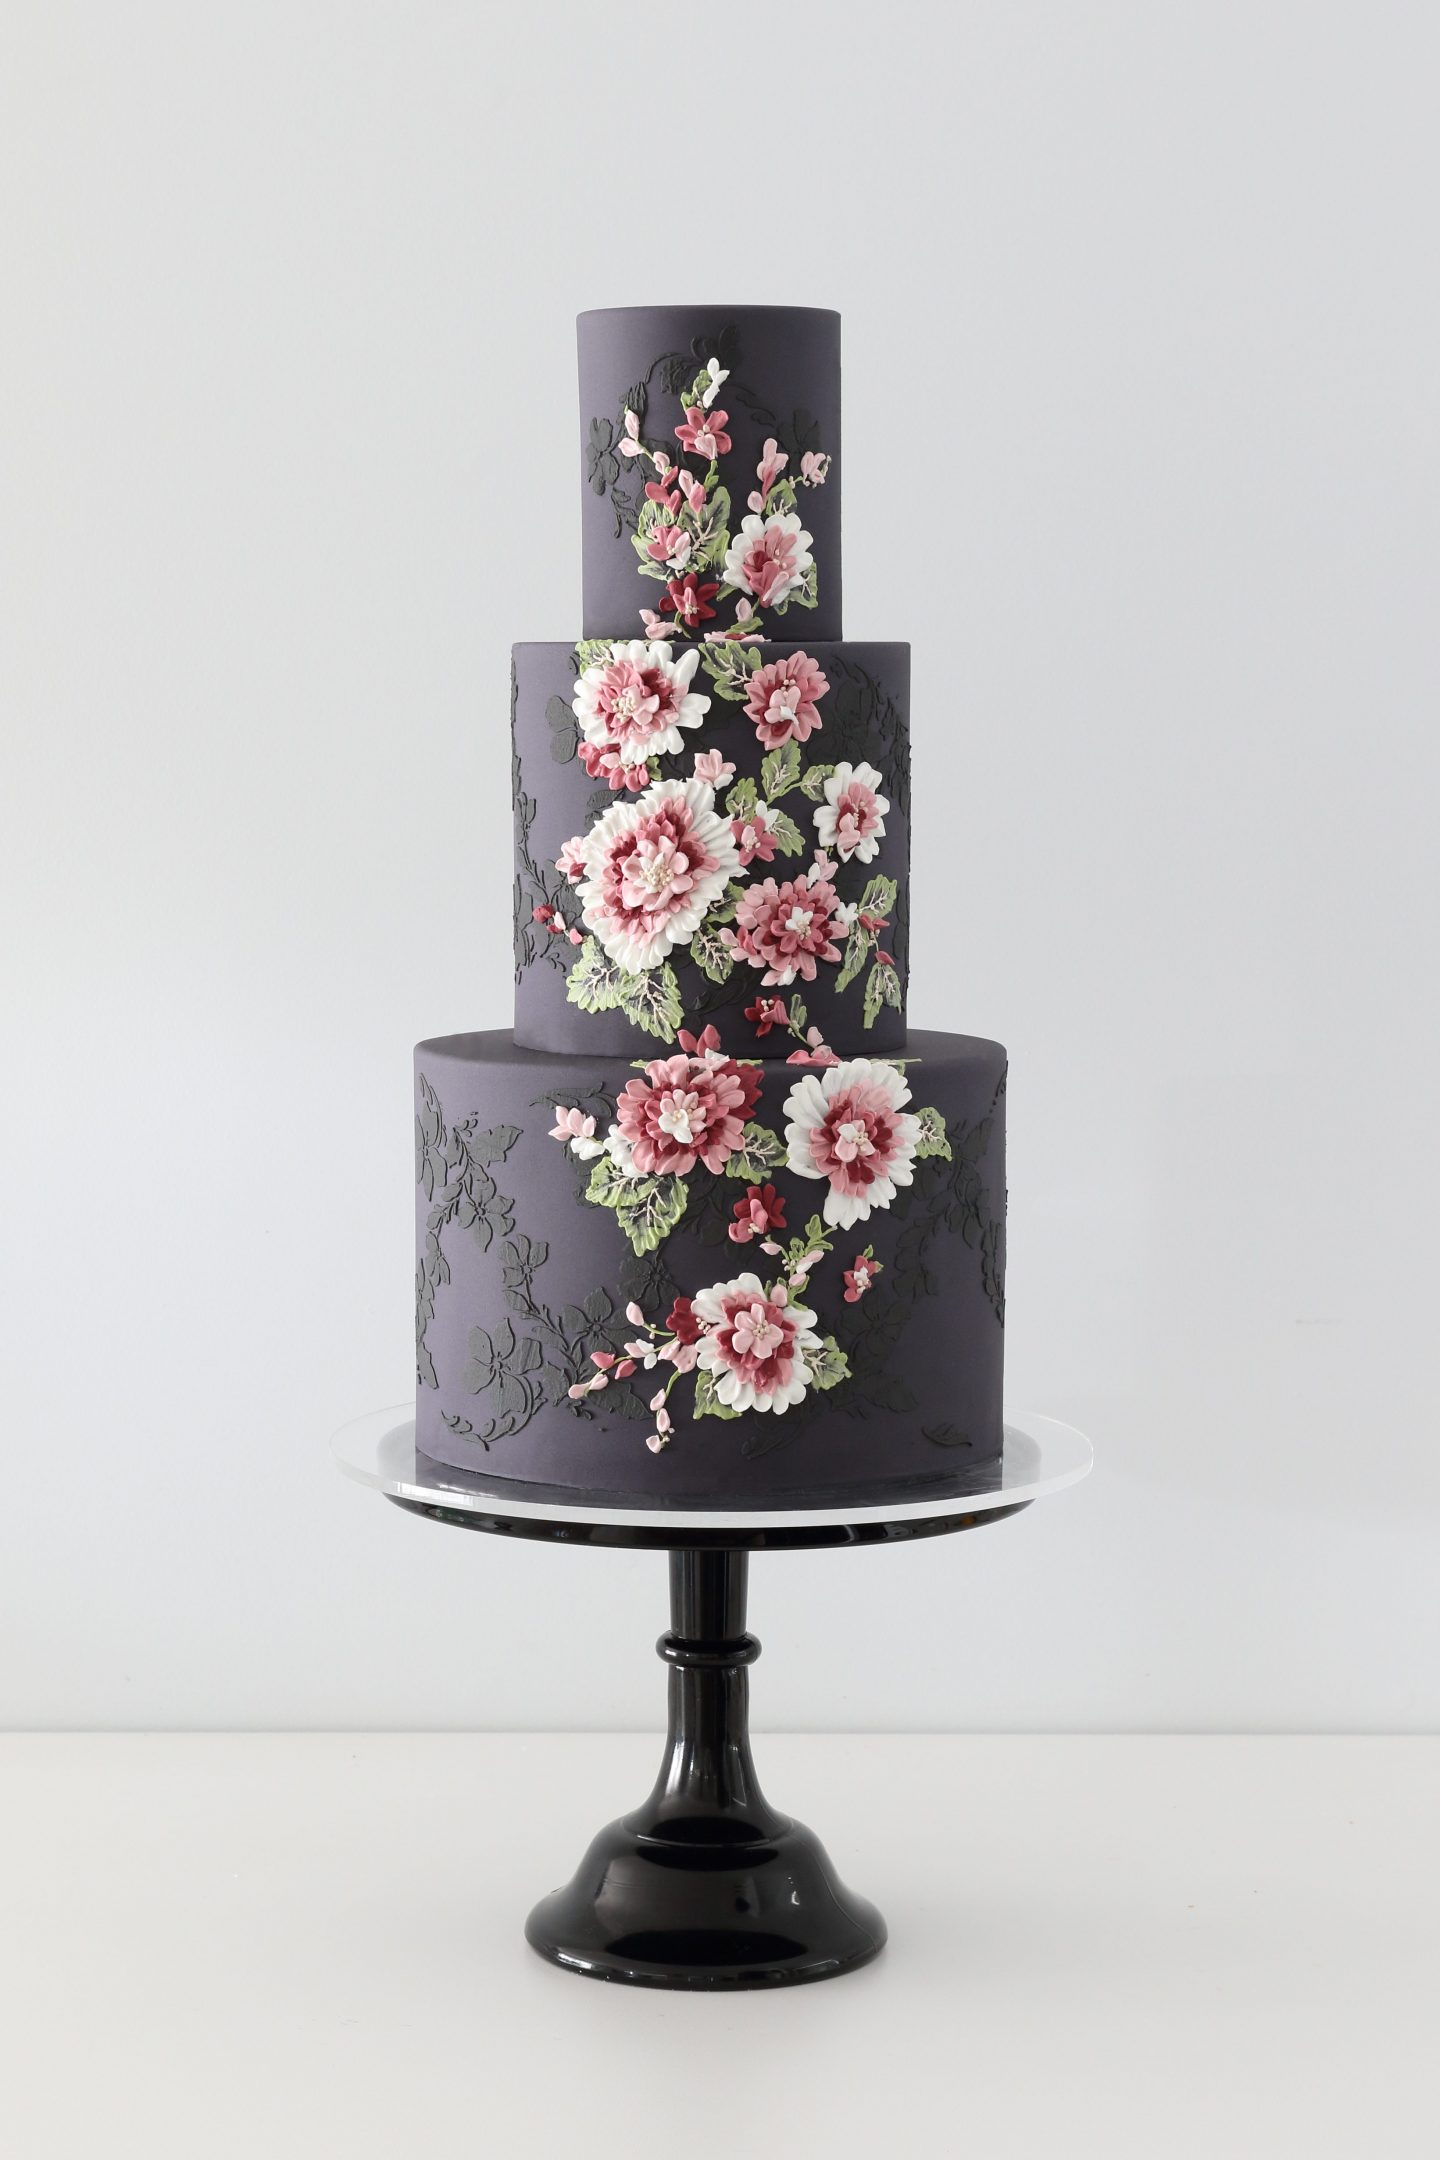 Dark and moody floral wedding cake